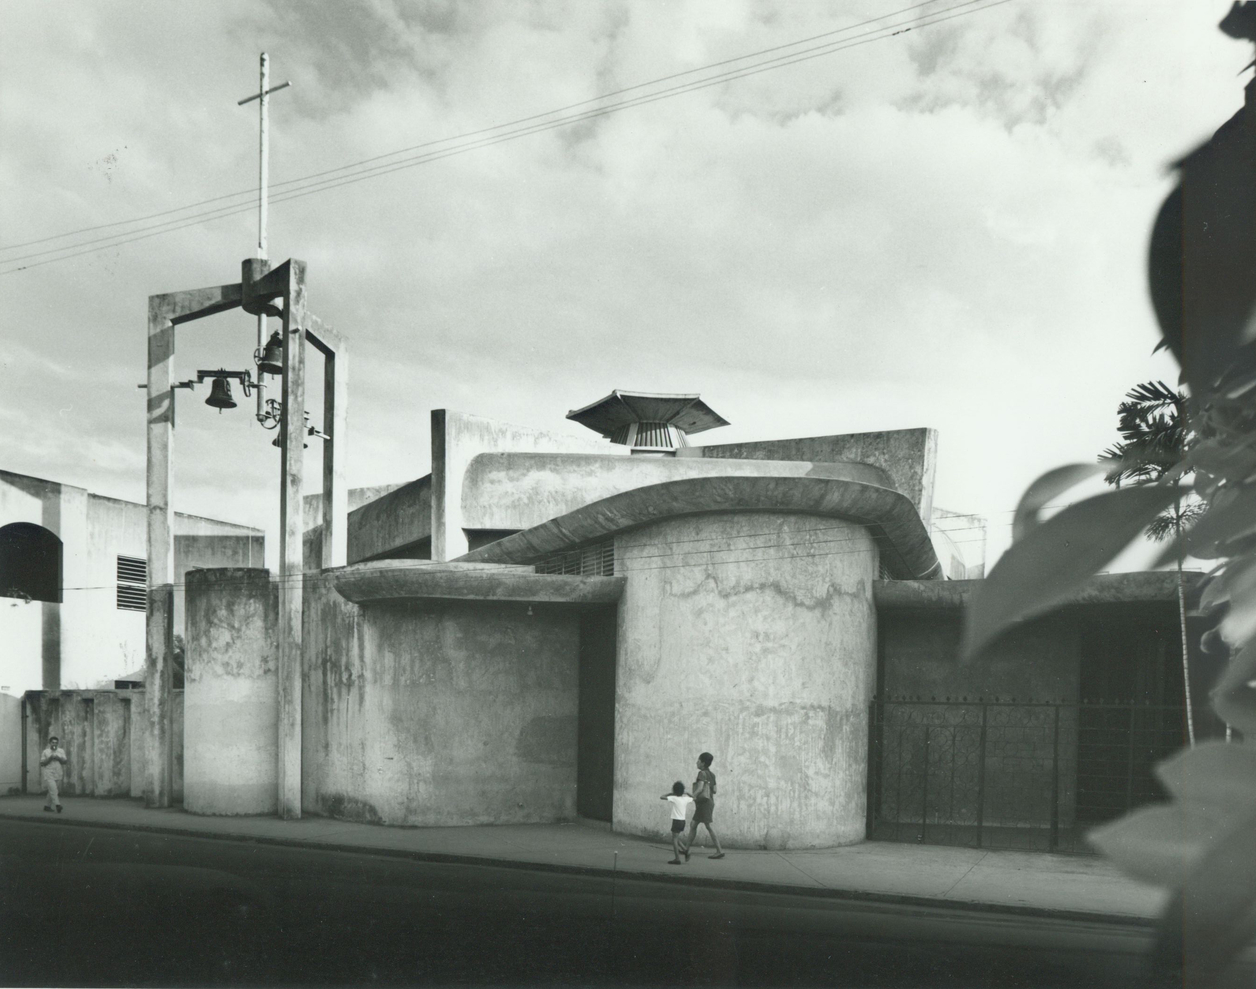 Del Carmen Church in 1965. Photo by Conrad Elger & Alexander Georges. Source: Henry Klumb Collection, Architecture and Construct